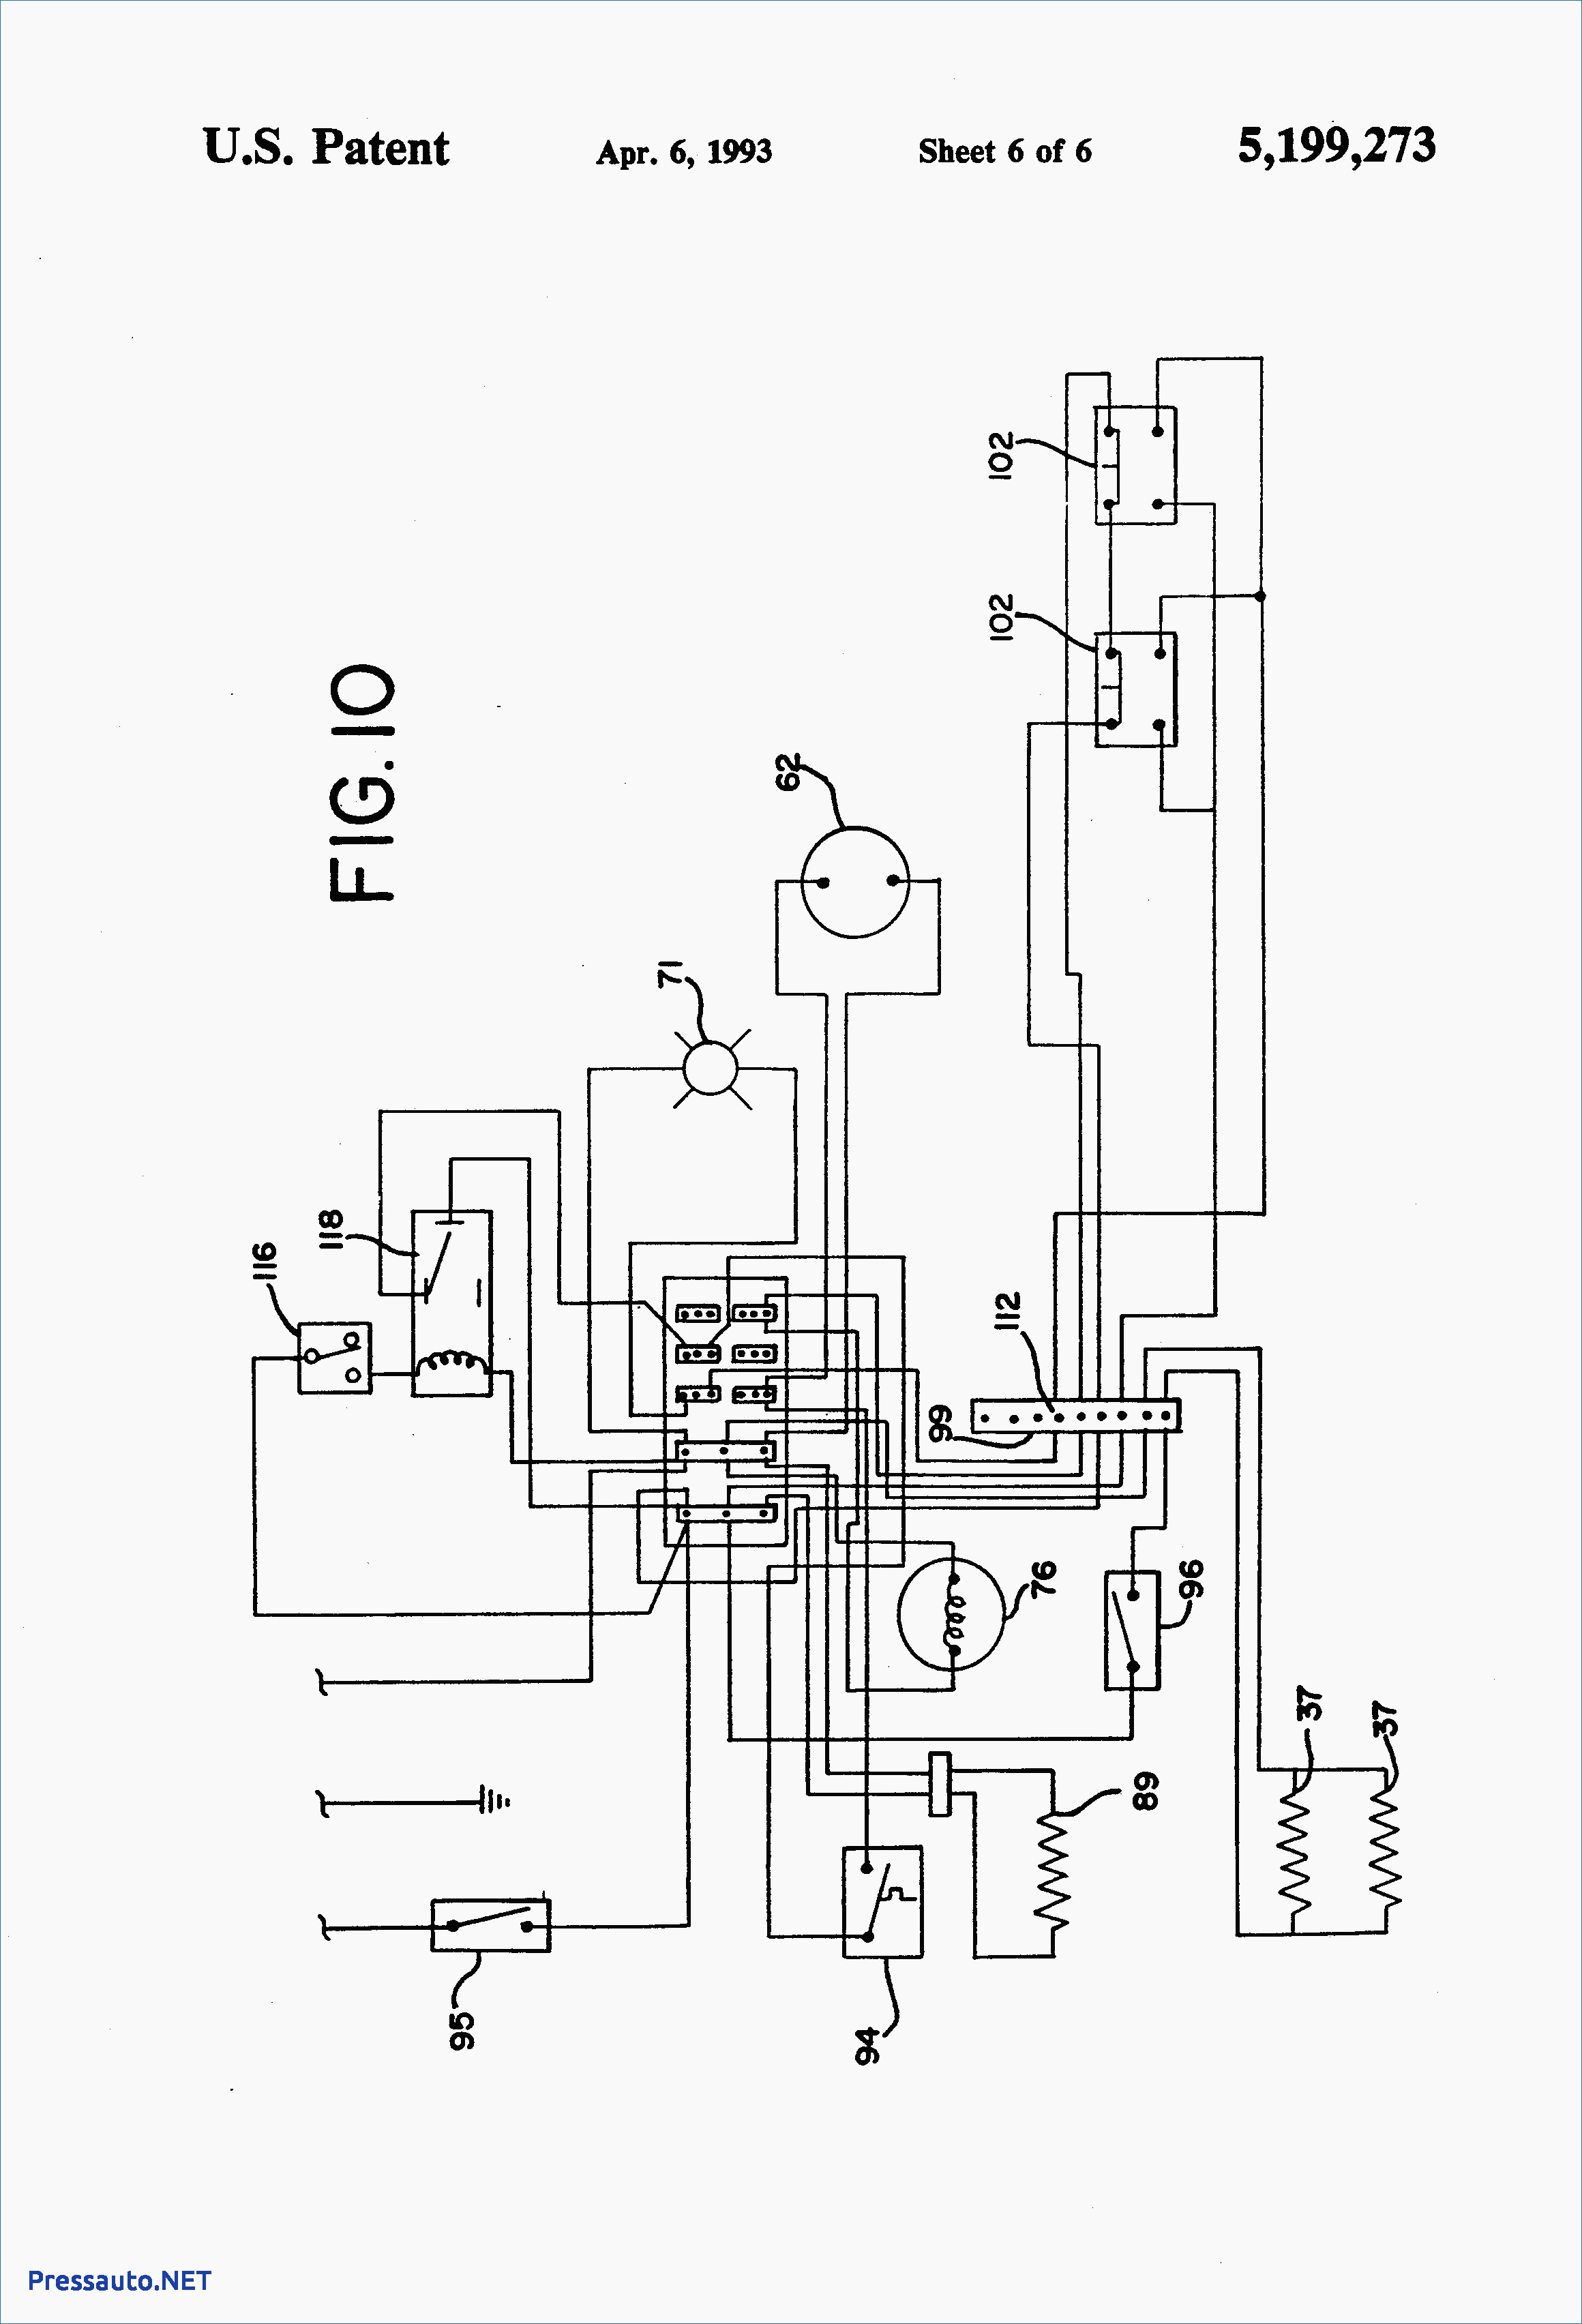 True Gdm 72f Wiring Diagram -85 Ford Mustang Alternator Wiring Diagram |  Begeboy Wiring Diagram Source | True Gdm 49f Wiring Diagram |  | Begeboy Wiring Diagram Source